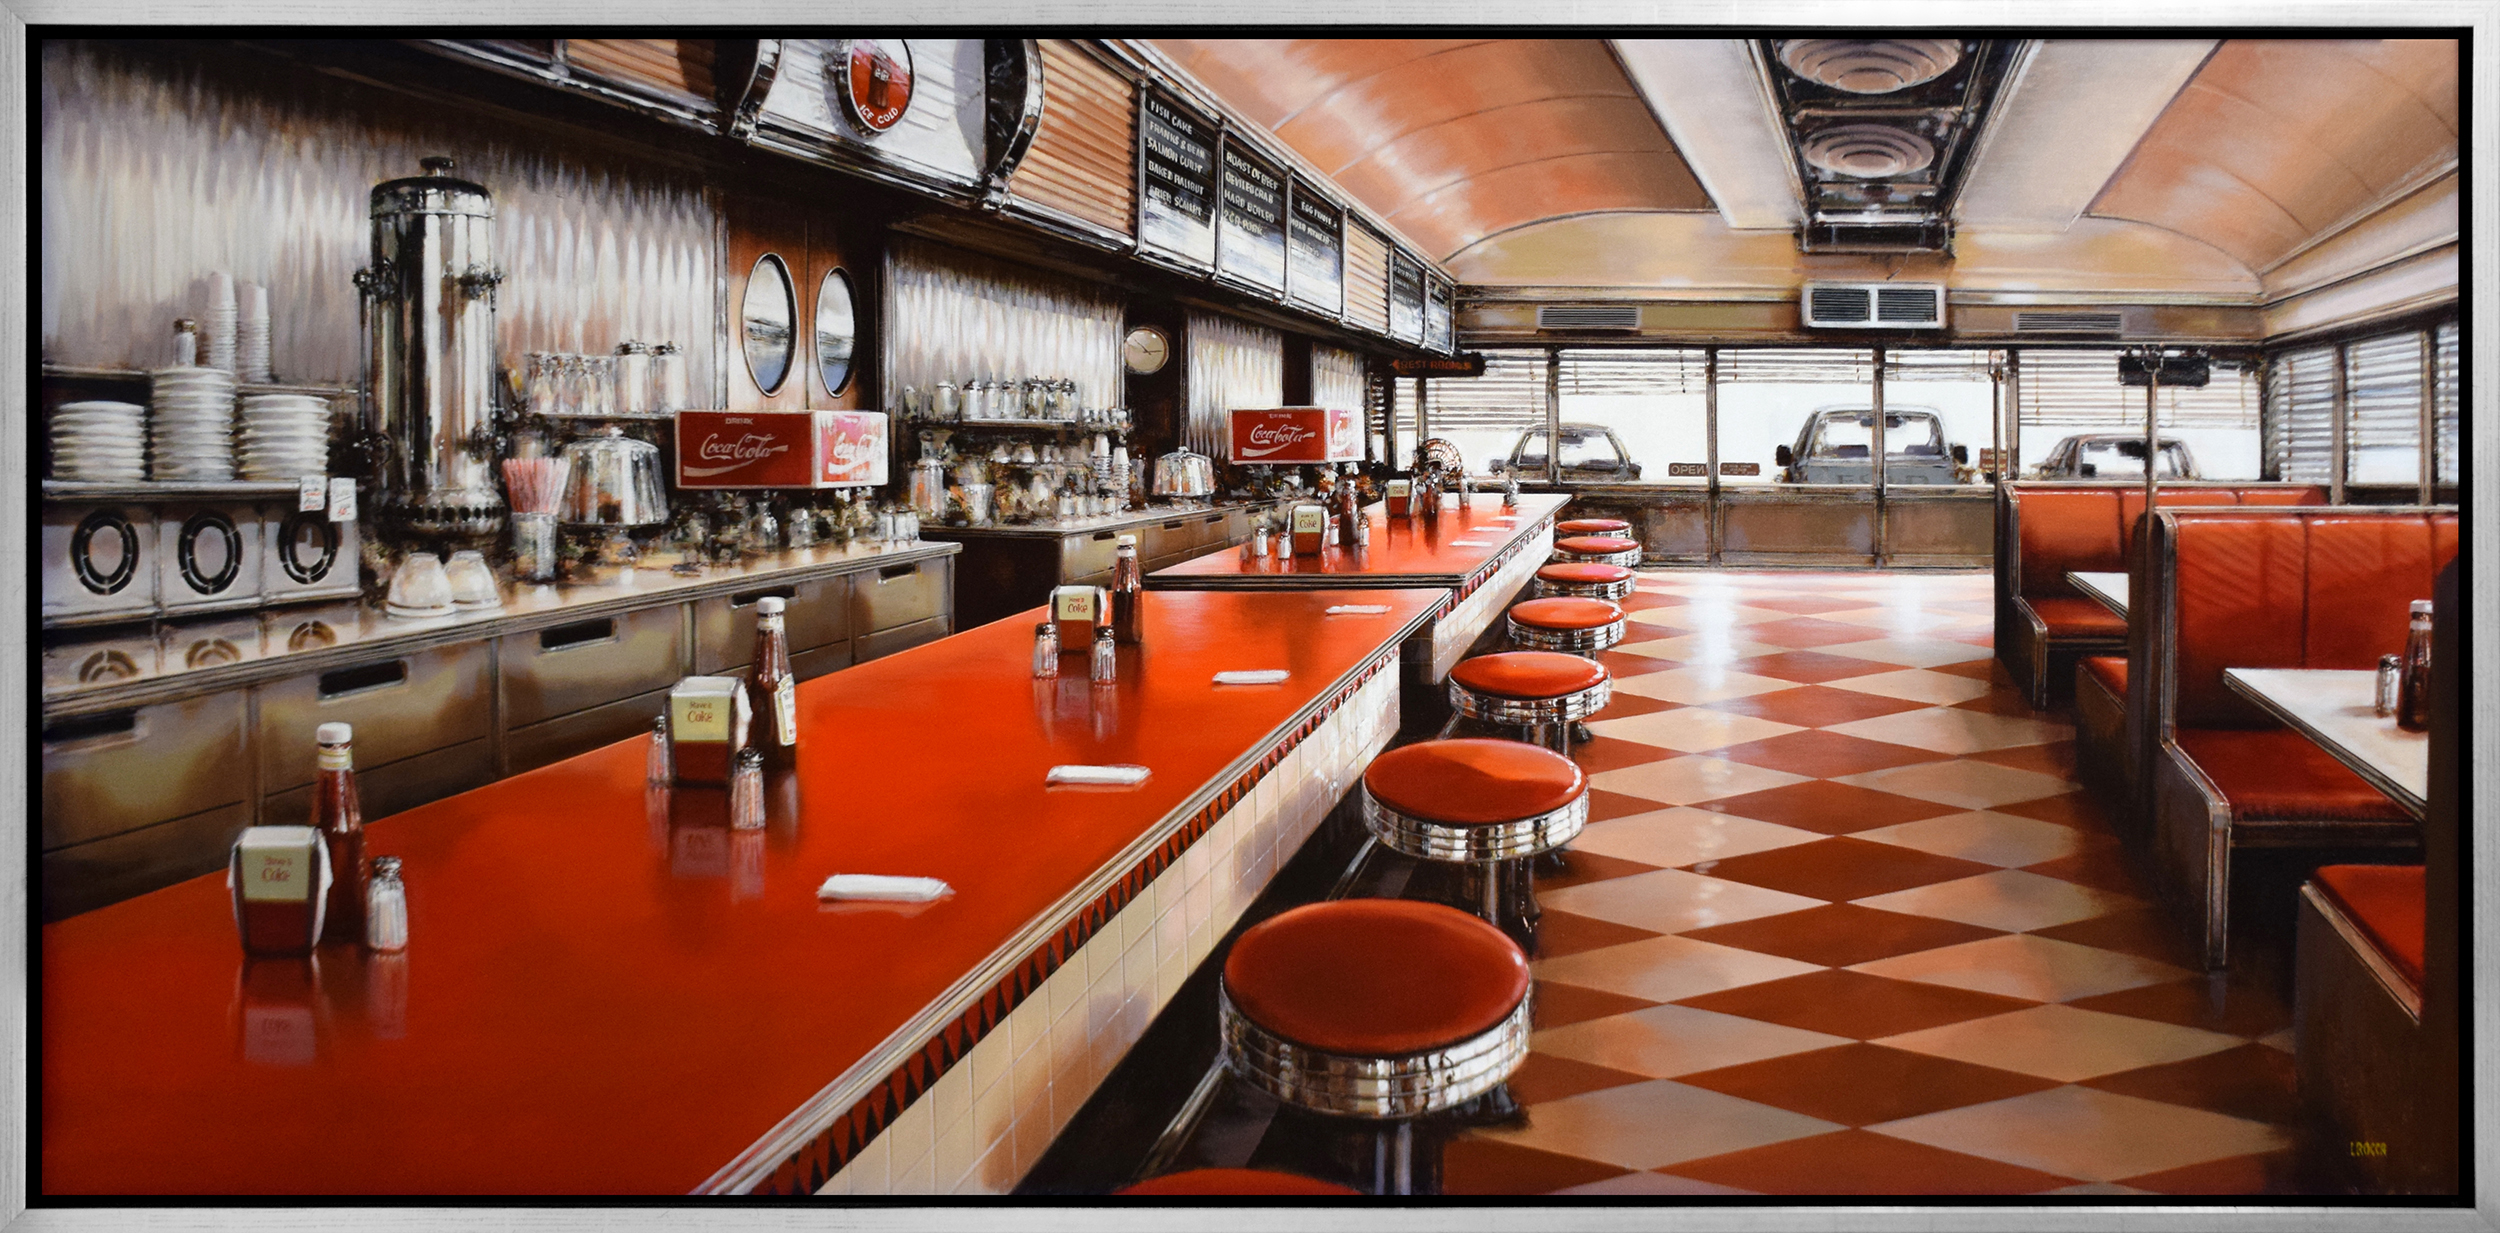 Luigi Rocca - Seven empty stools in a red diner